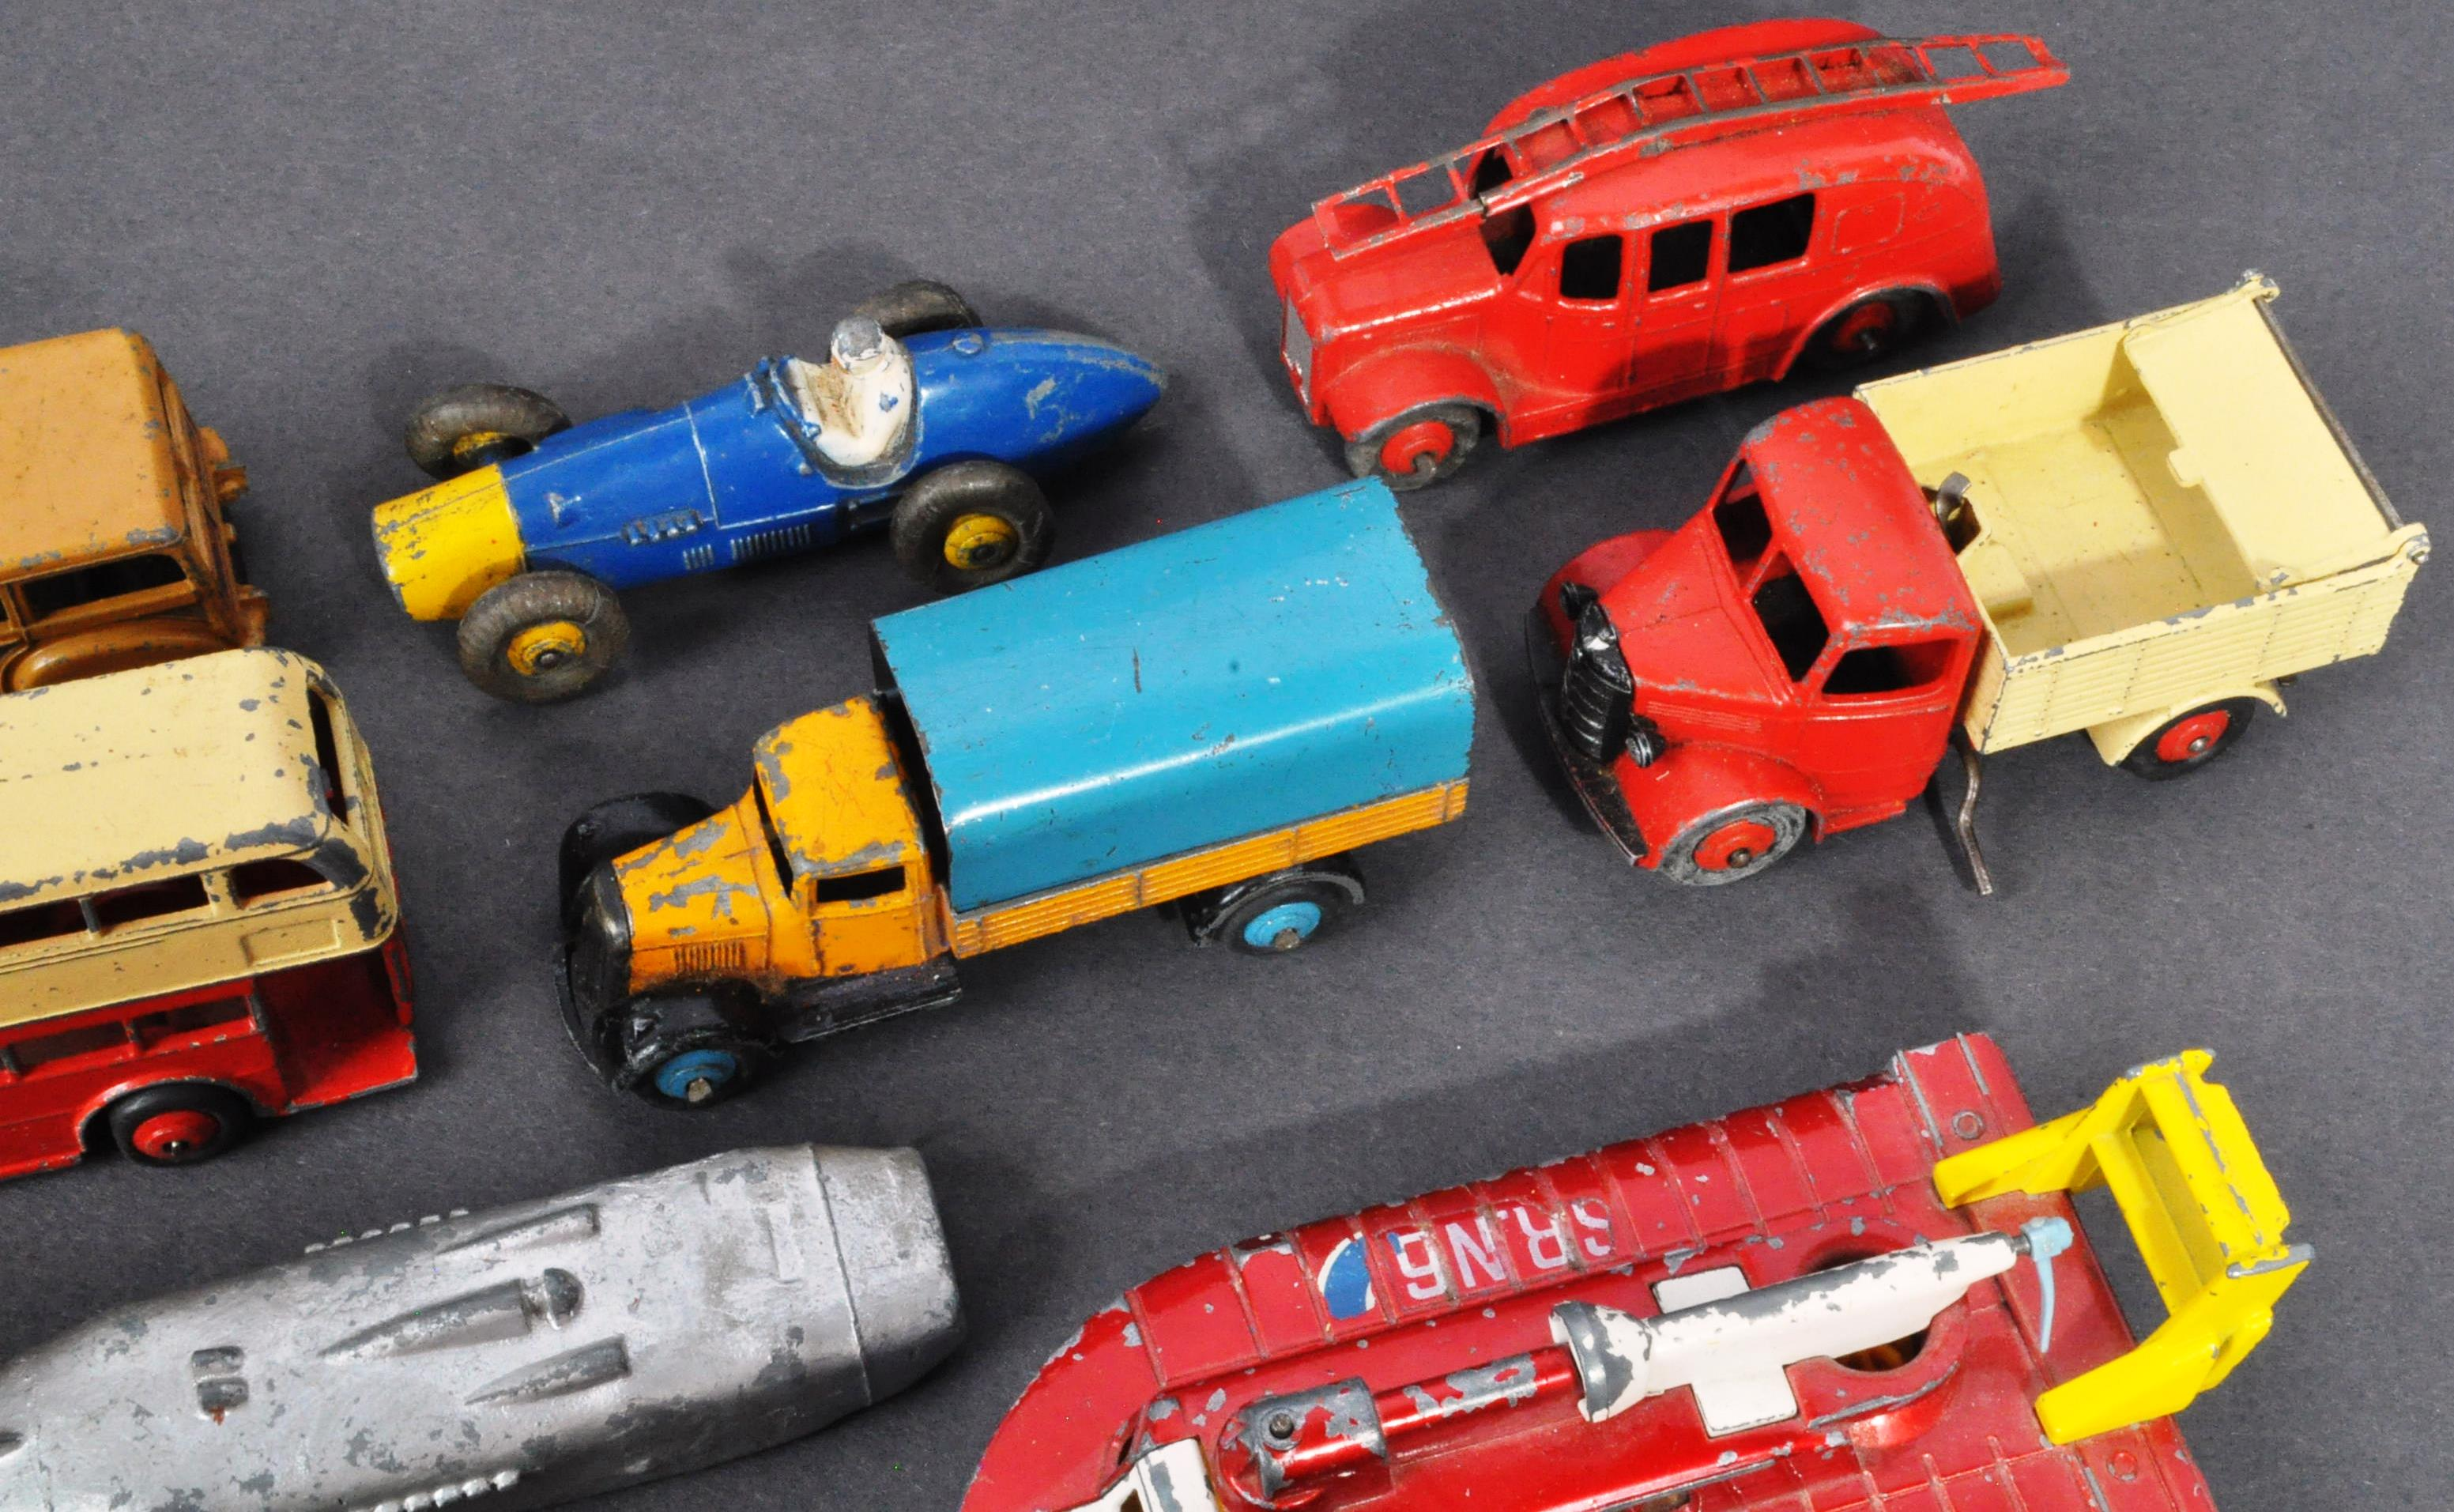 LARGE COLLECTION OF DINKY & OTHER DIECAST MODELS - Image 3 of 6